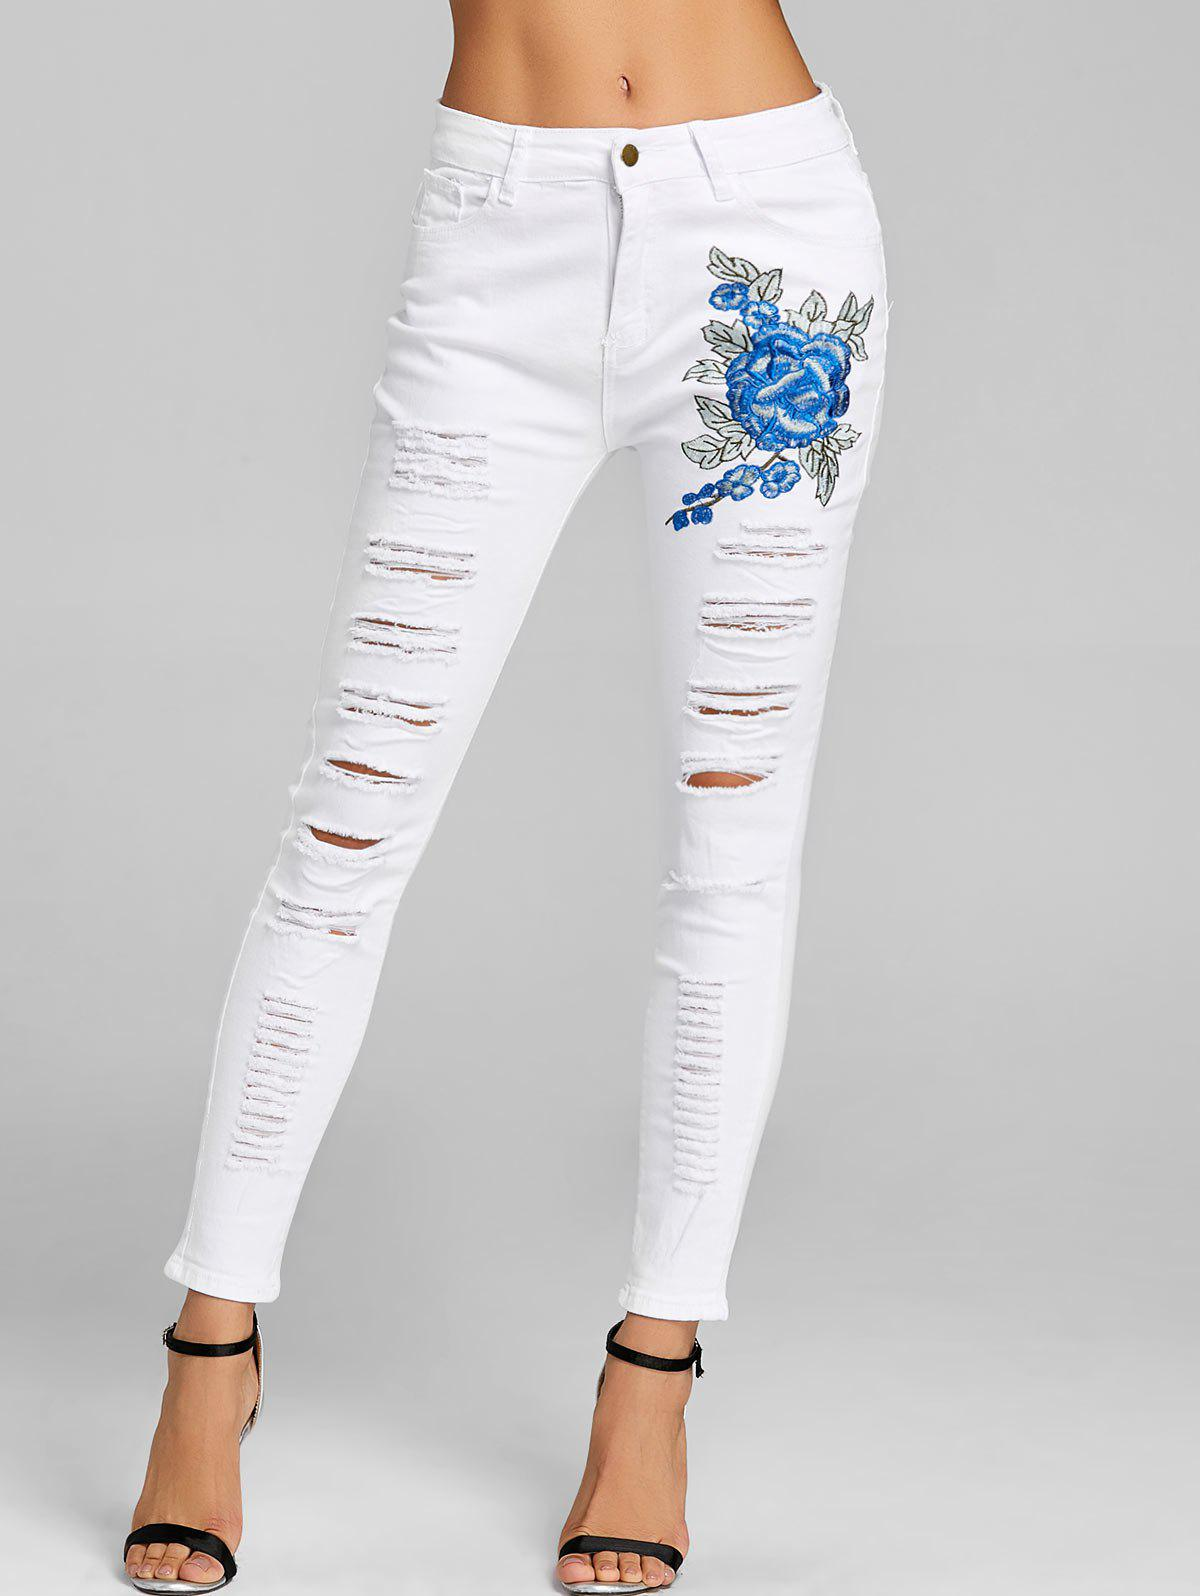 Floral Embroidery Skinny Distressed Jeans 238550410